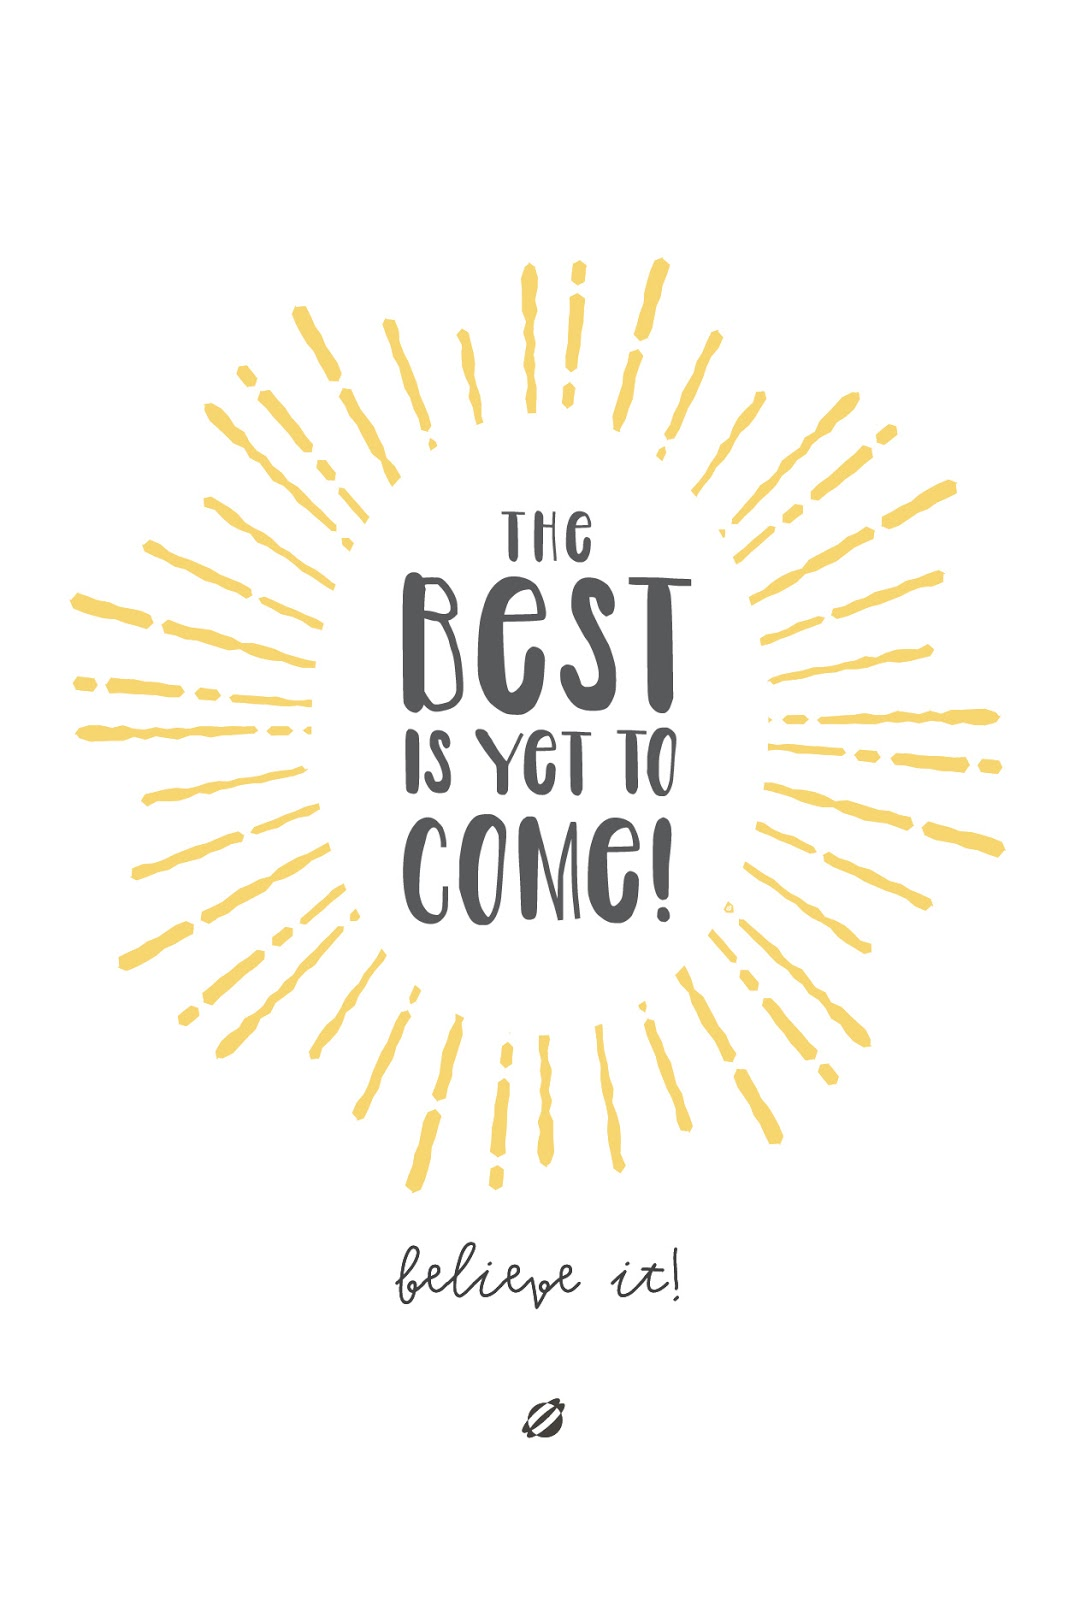 LostBumblebee ©2014 The Best Is Yet To COME! Free Printable : PERSONAL Use Only.